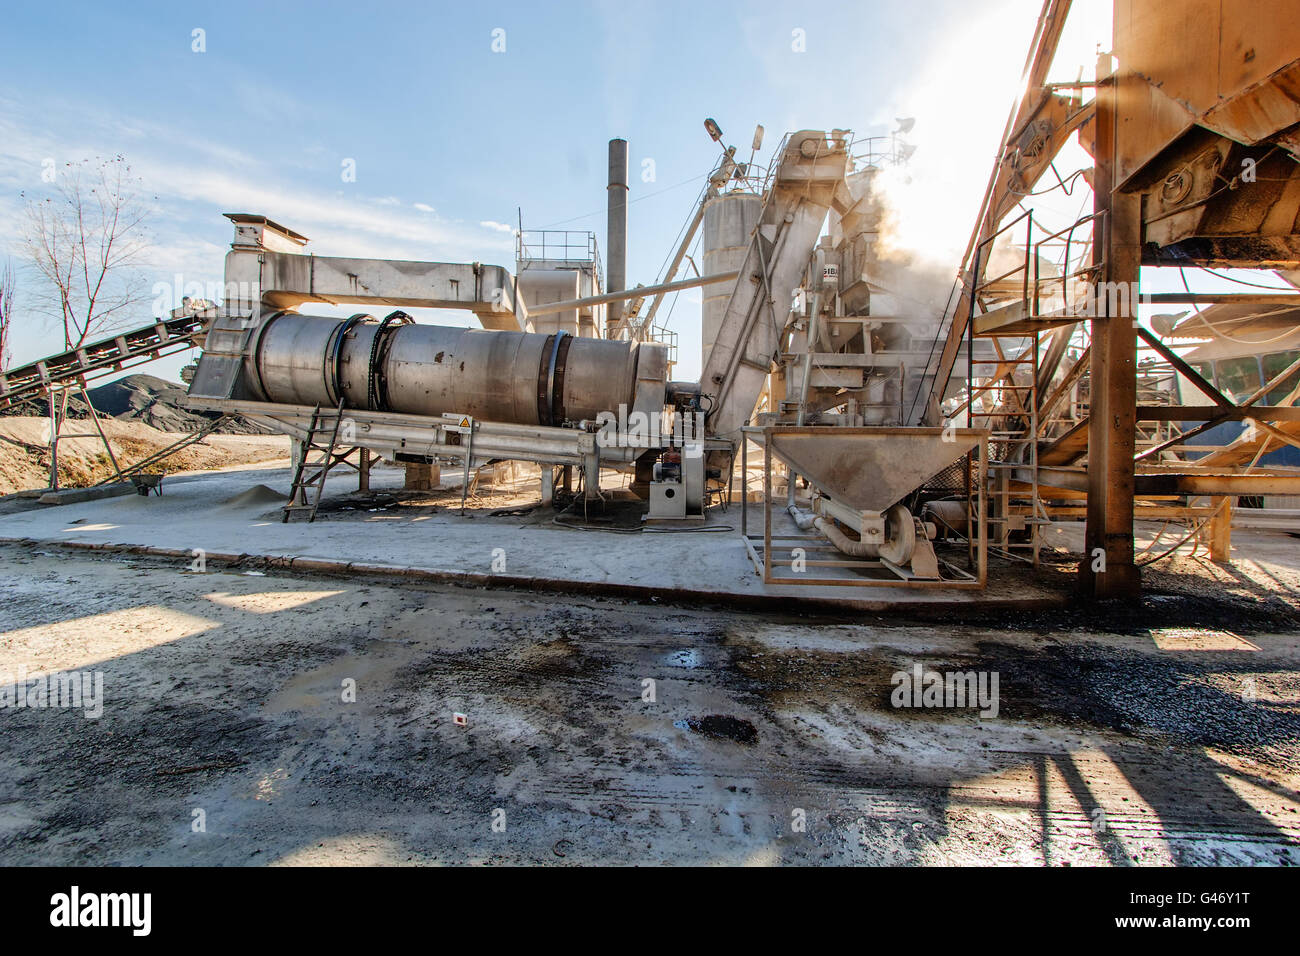 Asphalt Drum plant with continuous asphalt production - Stock Image